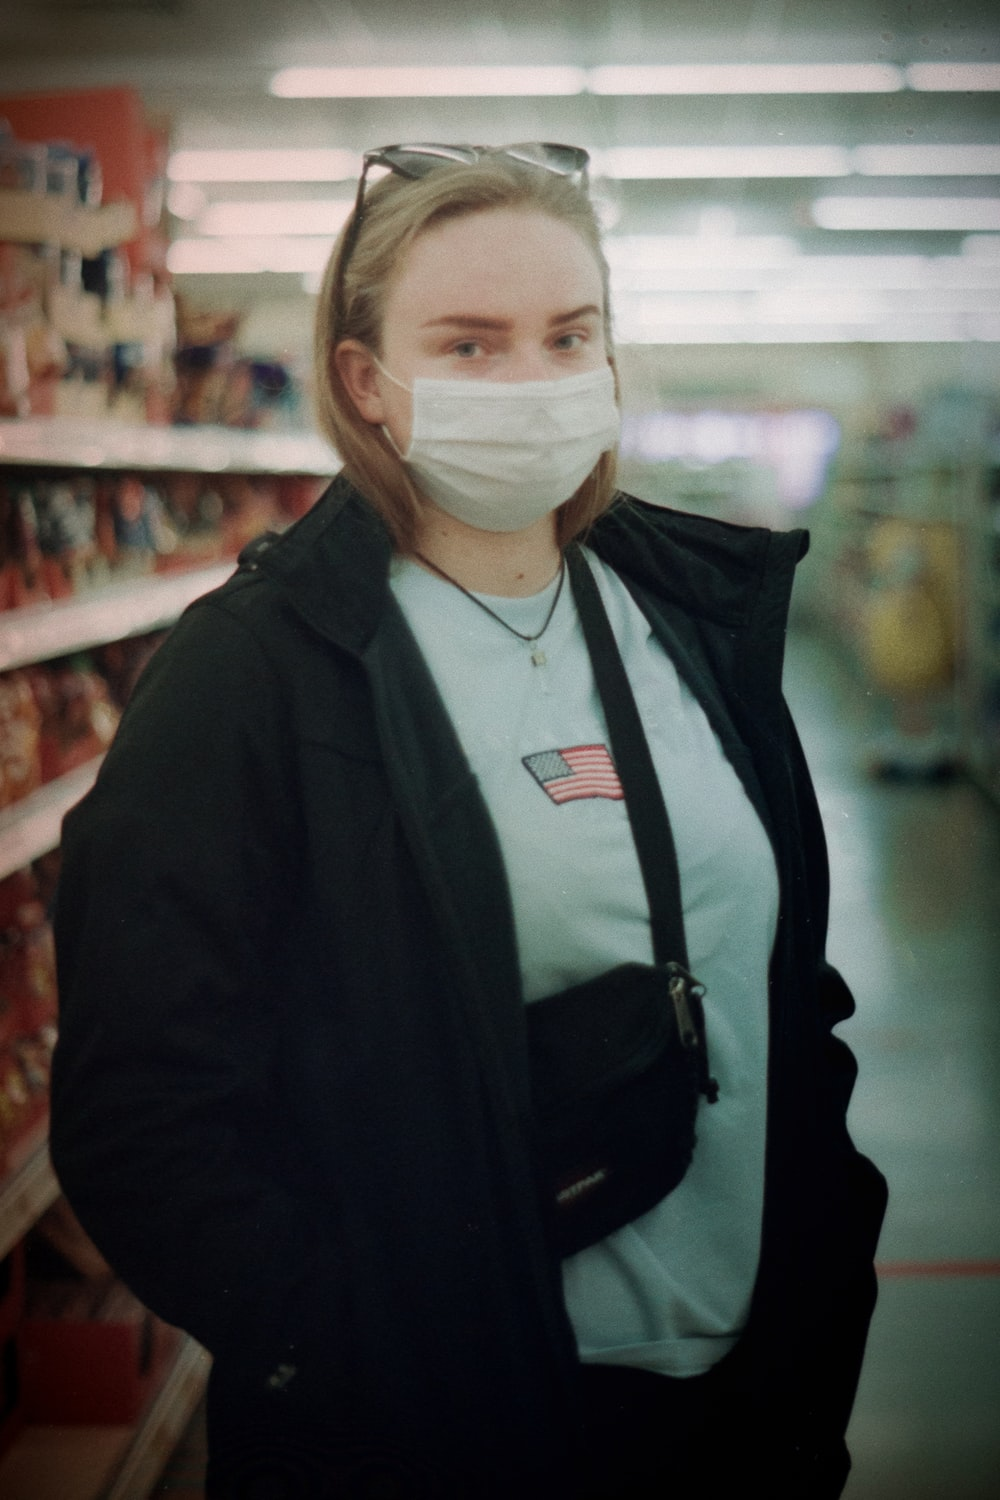 woman in black jacket wearing white face mask